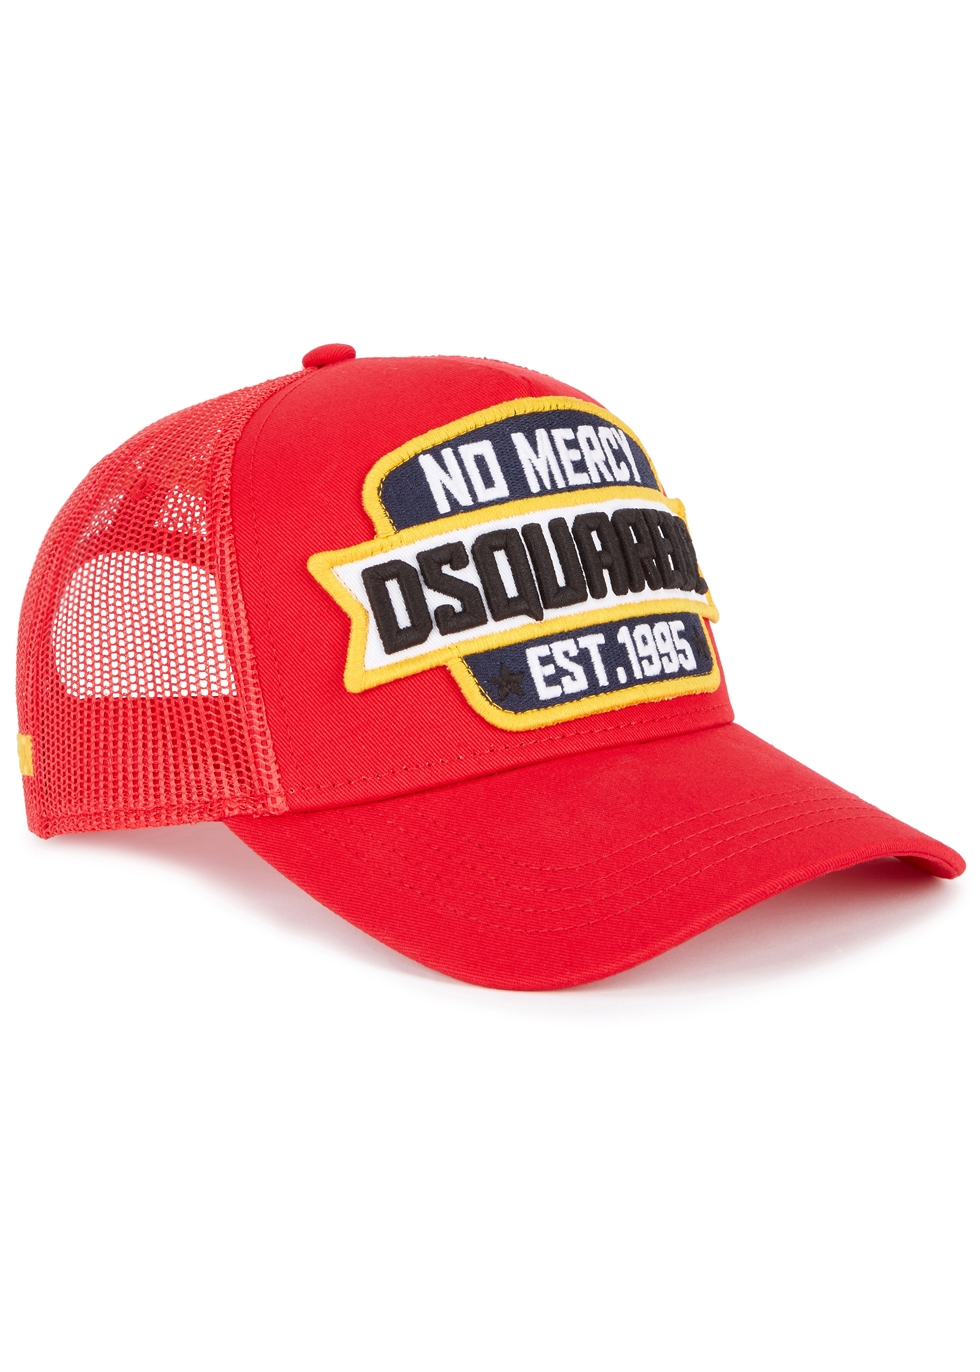 DSQUARED2 NO MERY EMBROIDERED TWILL CAP